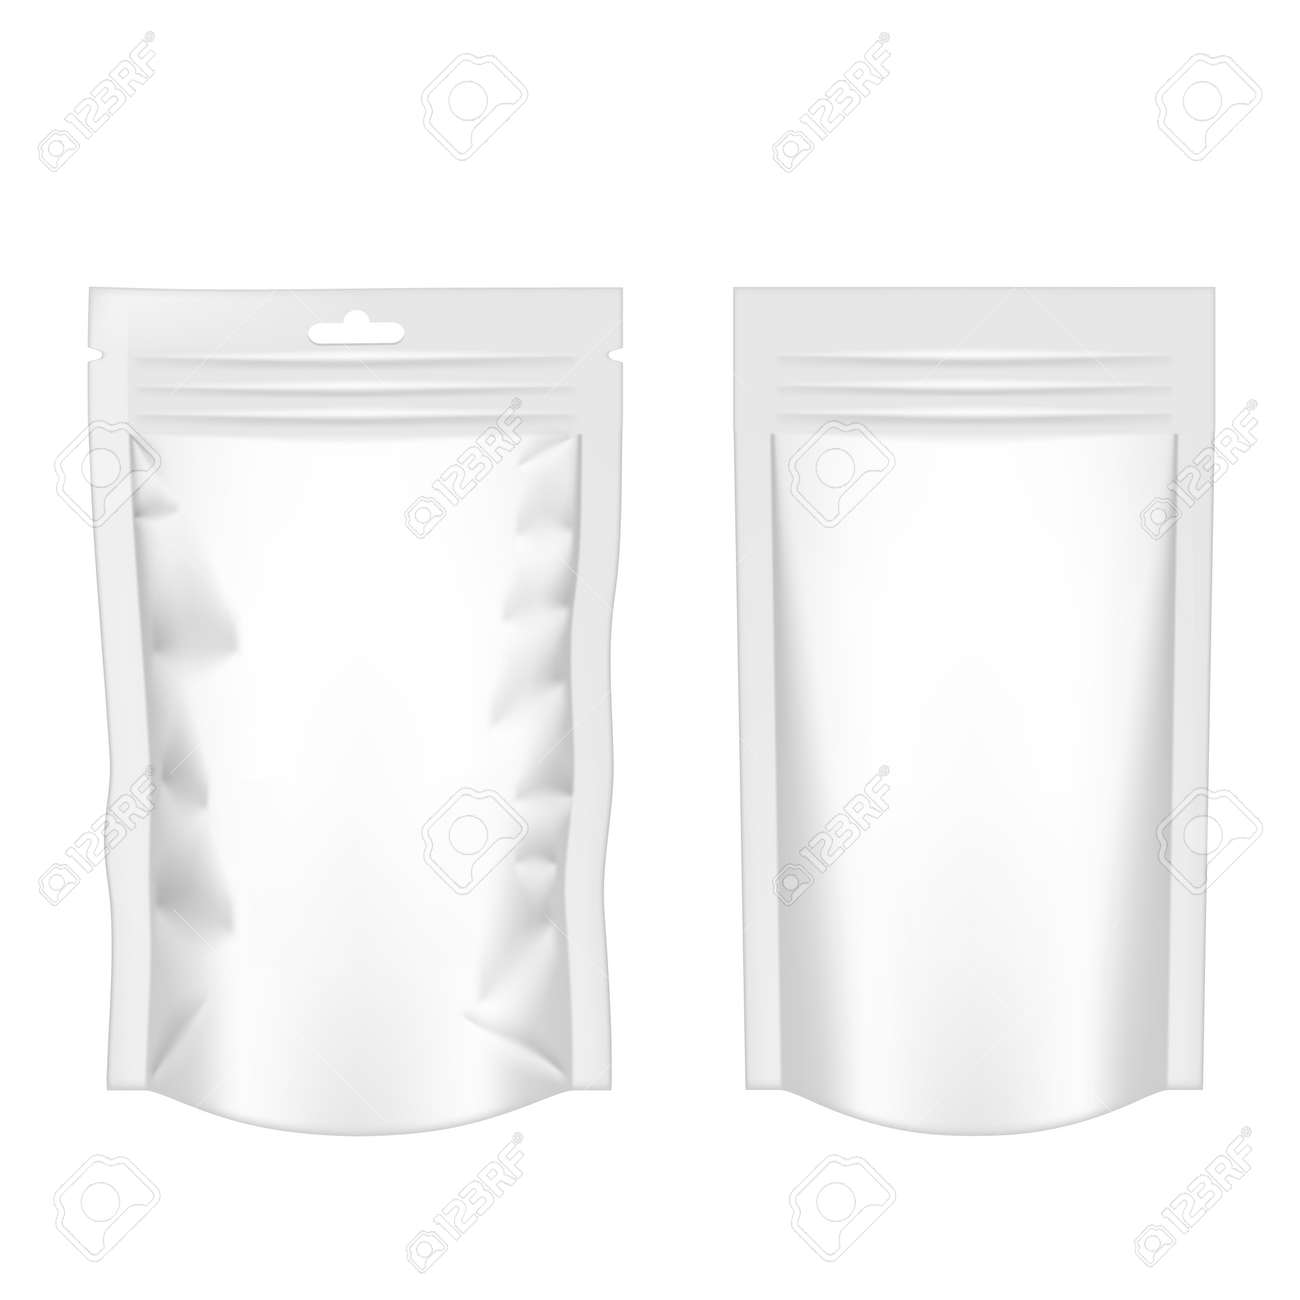 White Pouch Foil Plastic Packaging With Zipper - 169413626